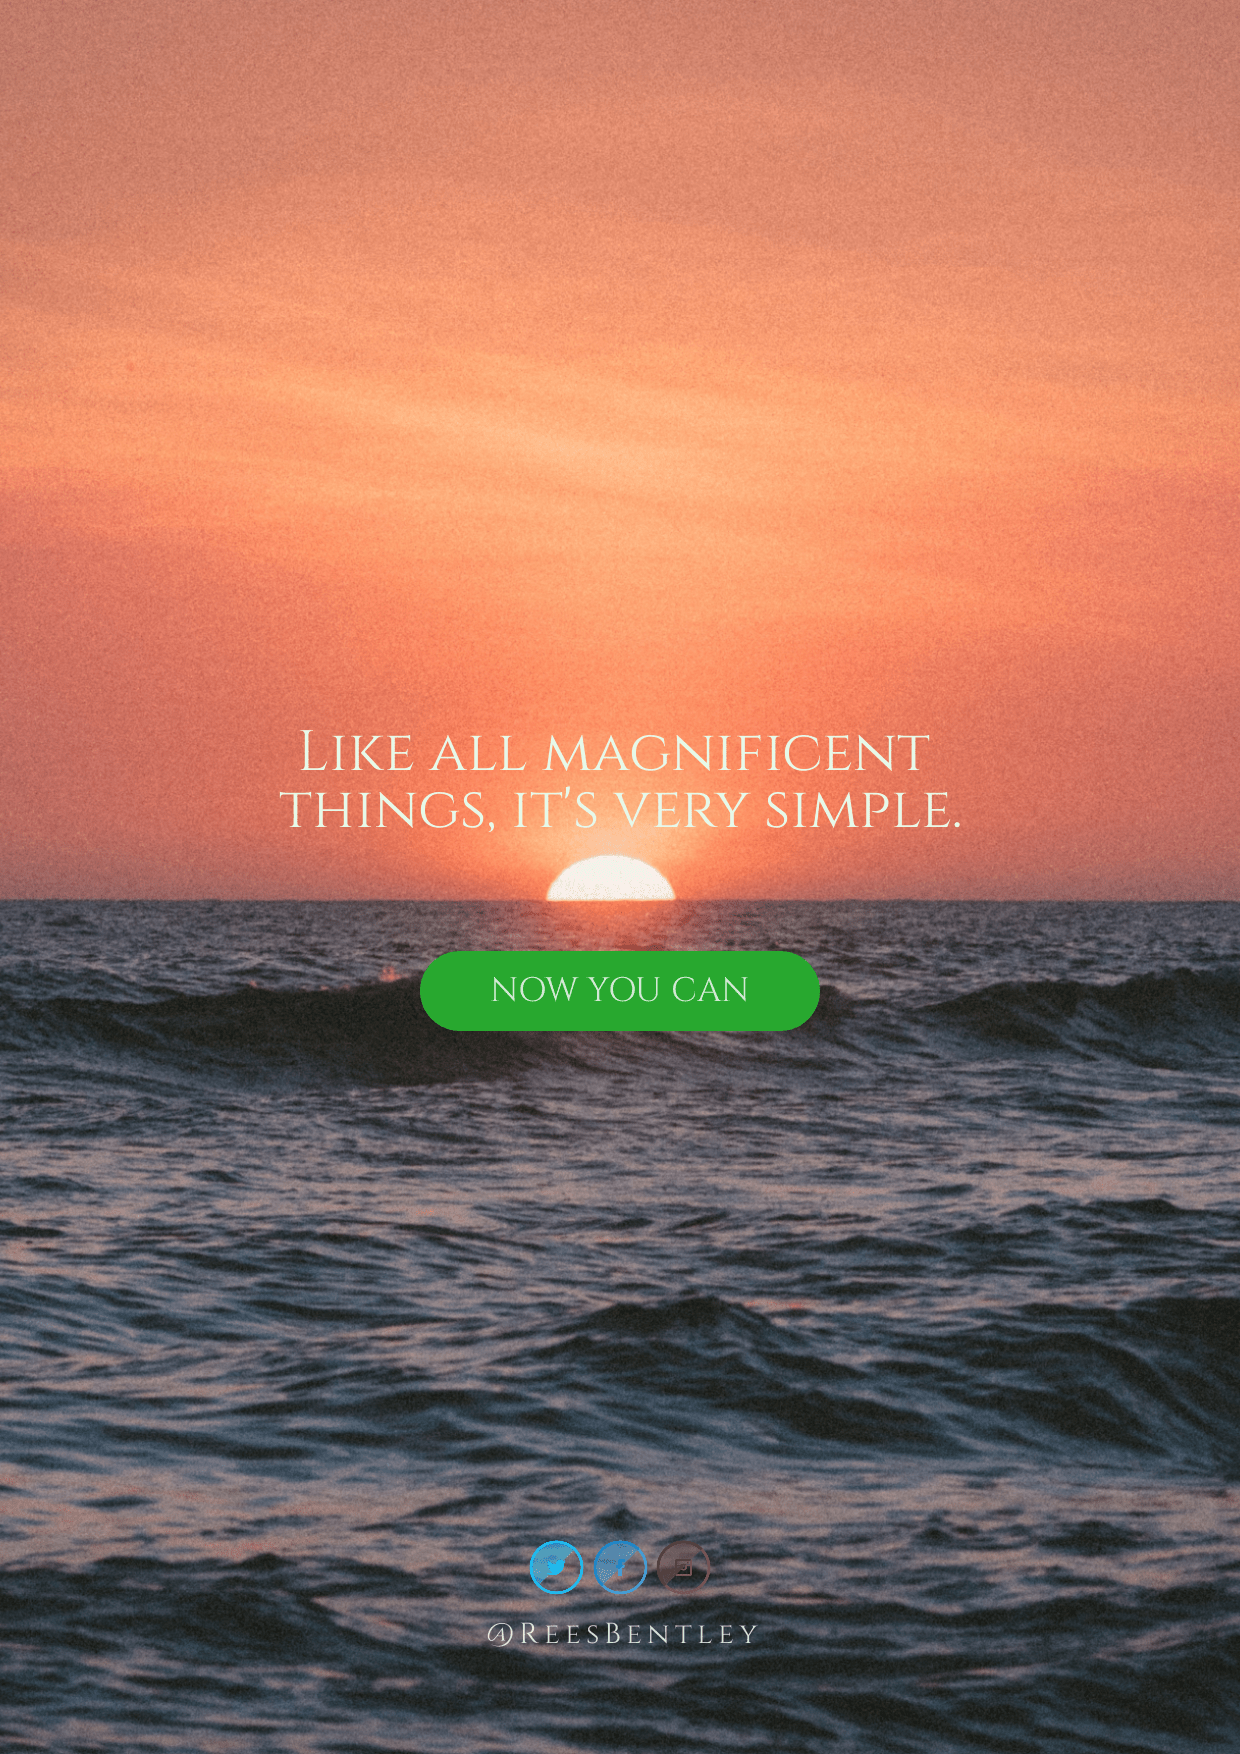 Horizon,                Sea,                Ocean,                Wave,                Sky,                Calm,                Wind,                Sunrise,                Shore,                Sunset,                Font,                Essentials,                Text,                 Free Image